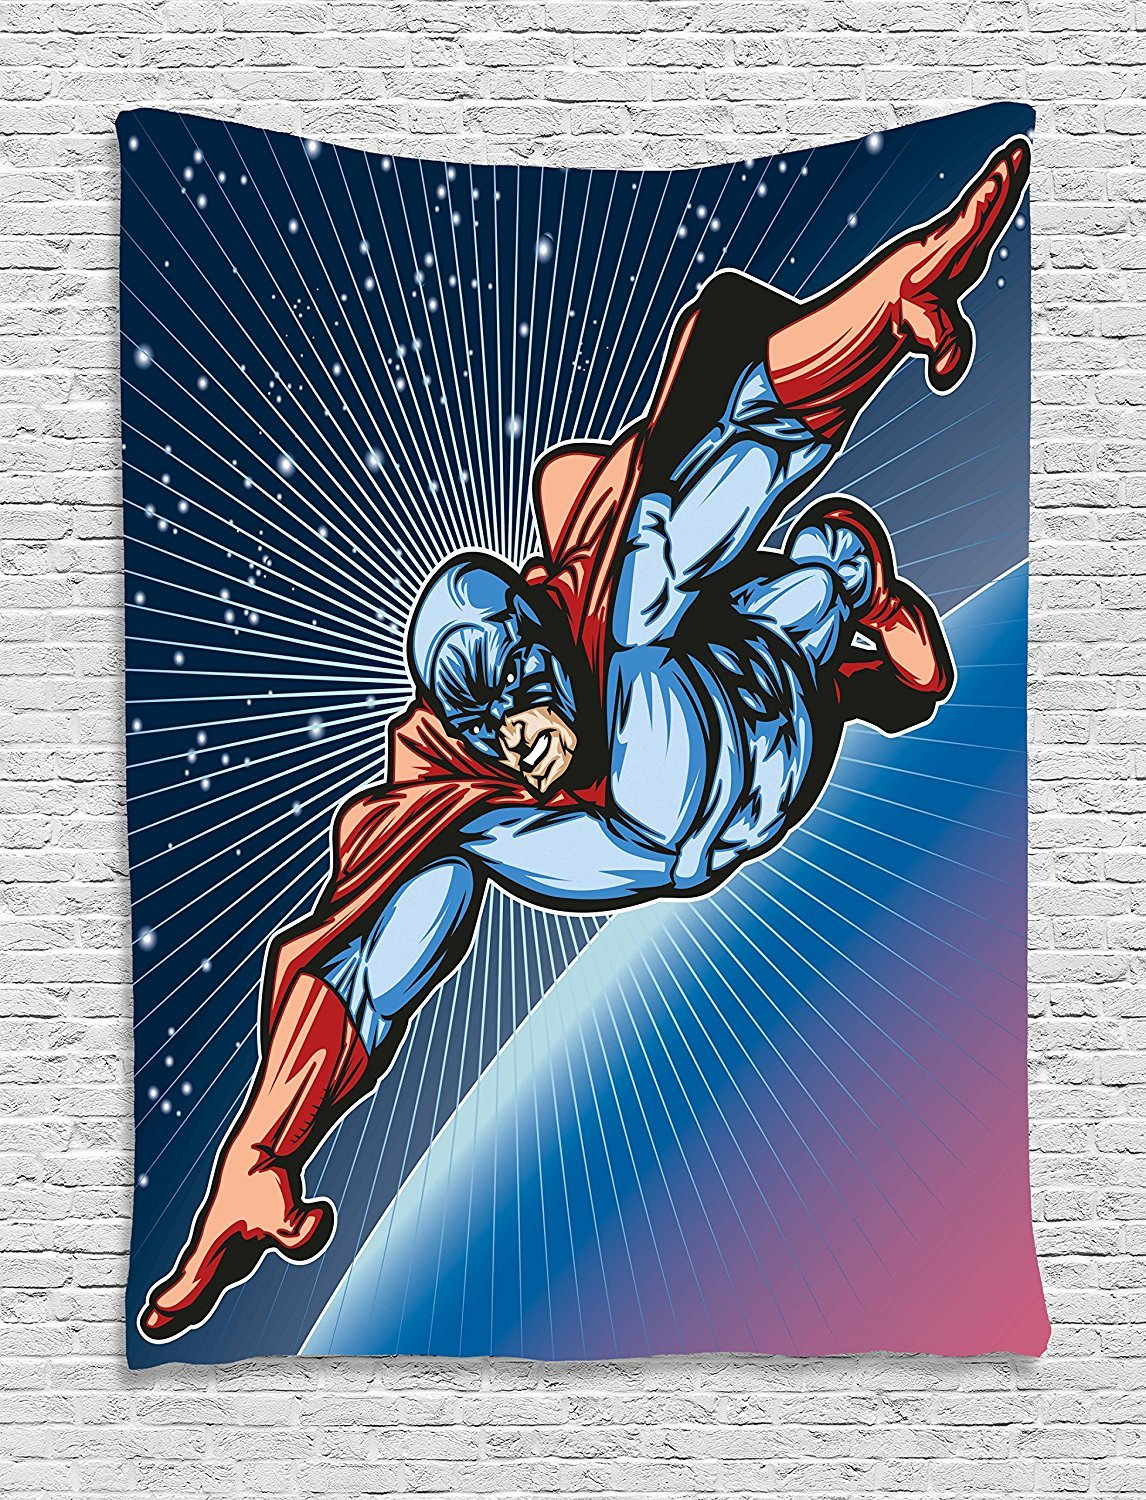 Superhero Tapestry, Brave Masked Hero Flying on Galaxy Mission Protecting the Universe Image, Wall Hanging for Bedroom Living Room Dorm, 60 W X 80 L Inches, Violet Blue Red